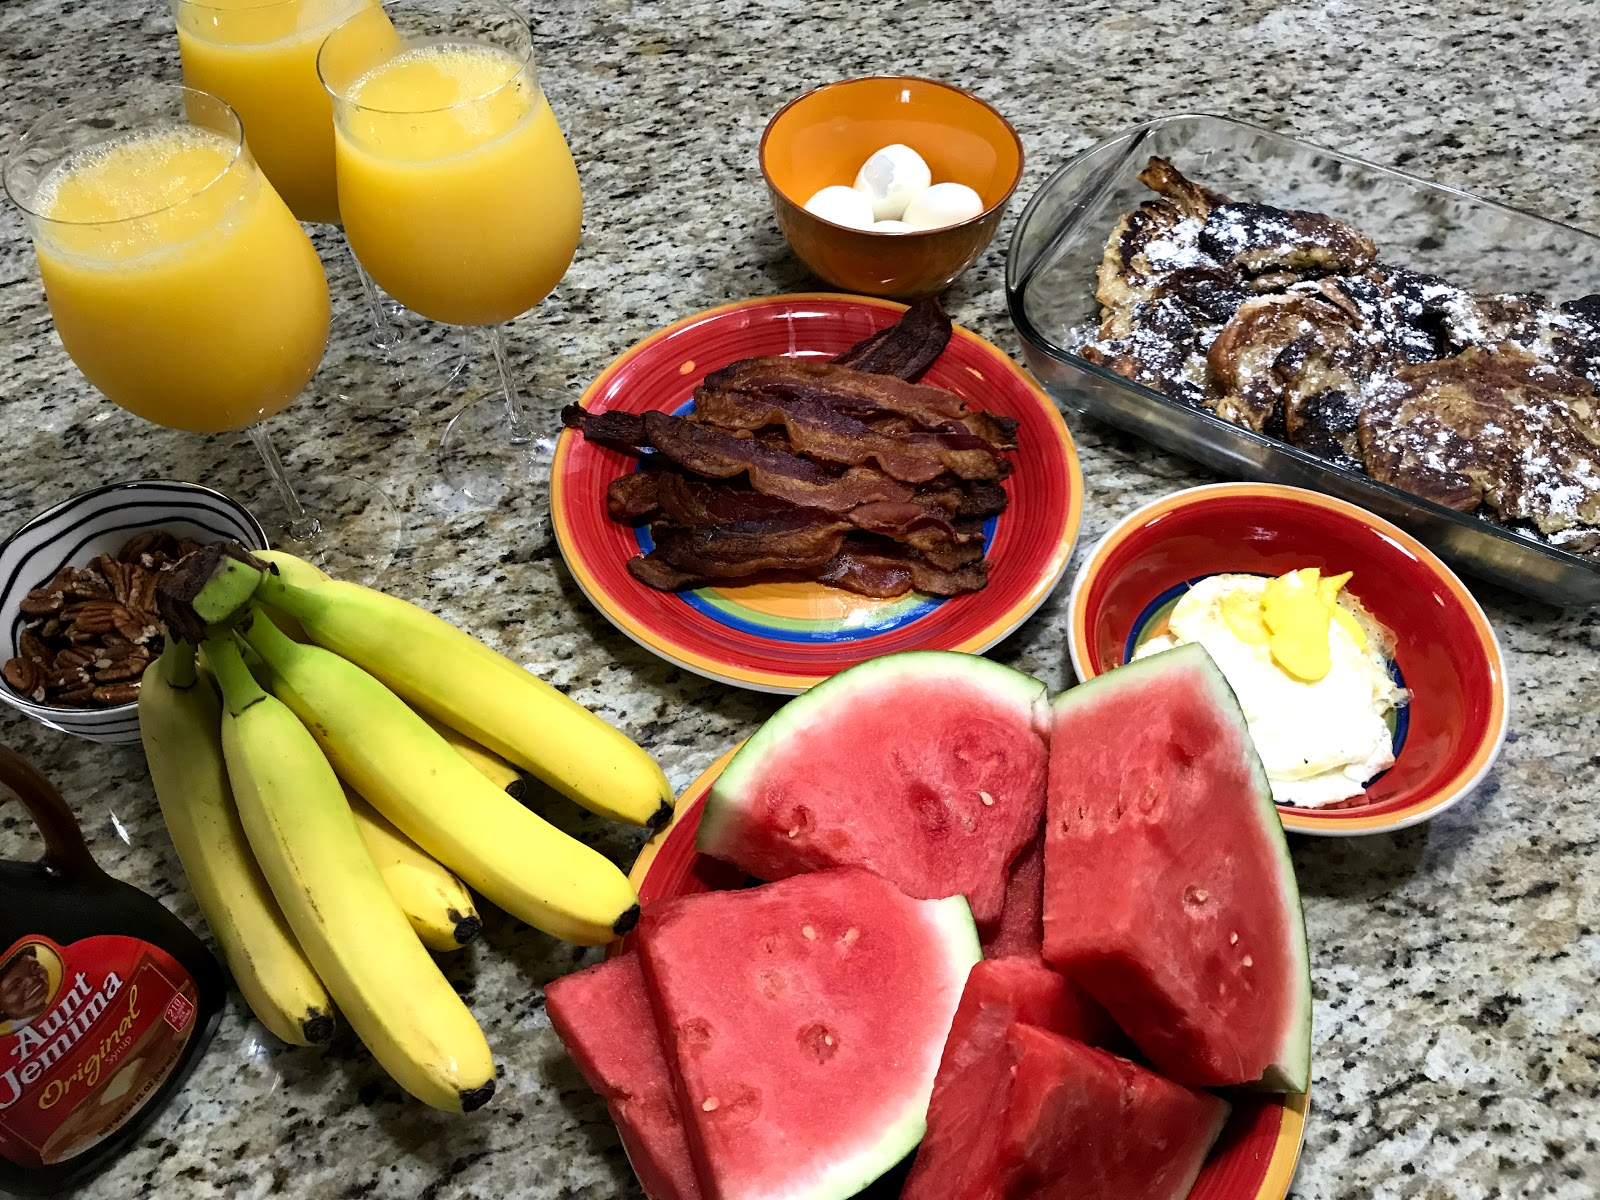 Image: Bananas, watermelon, eggs, bacon, orange juice and french toast. Seen first on bits and babbles blog